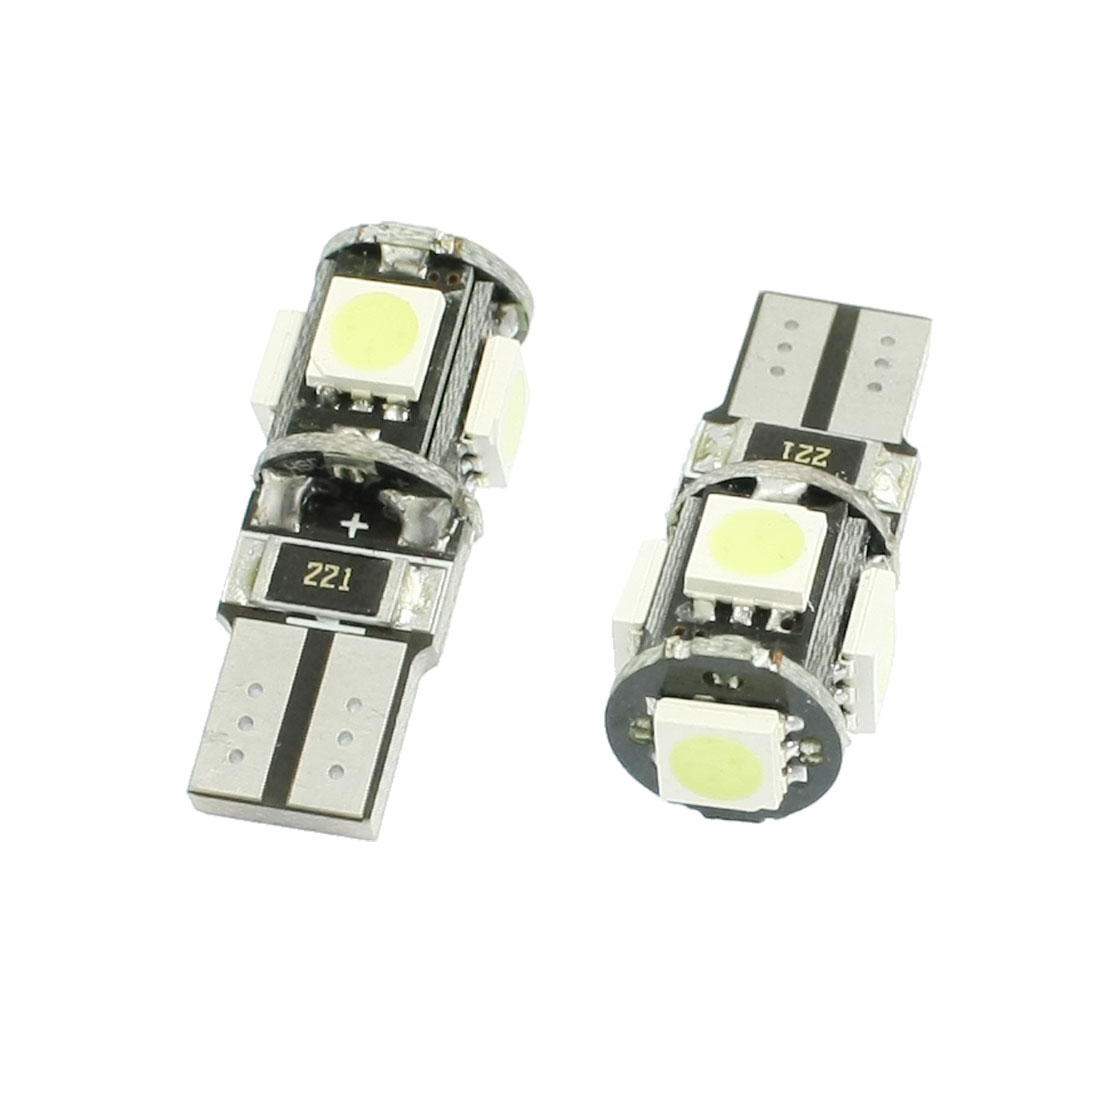 2 Pcs Car T10 194 168 White 5050 SMD 5 LED Wedge Turn Tail Brake Light Bulb Lamp